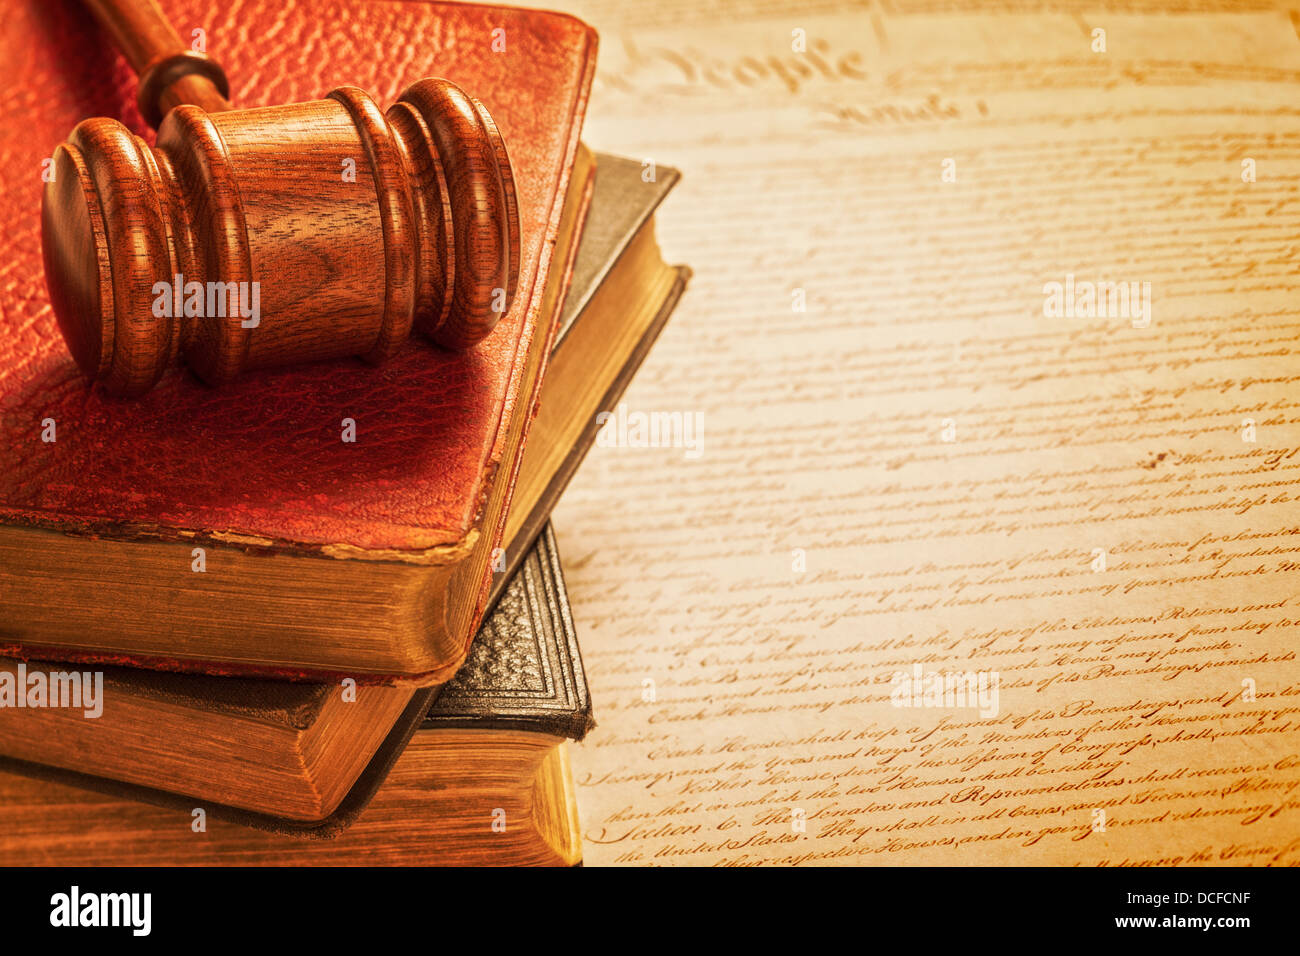 Gavel and Constitution American Justice Concept - gavel, a pile of books, and a copy of the American Constitution. - Stock Image